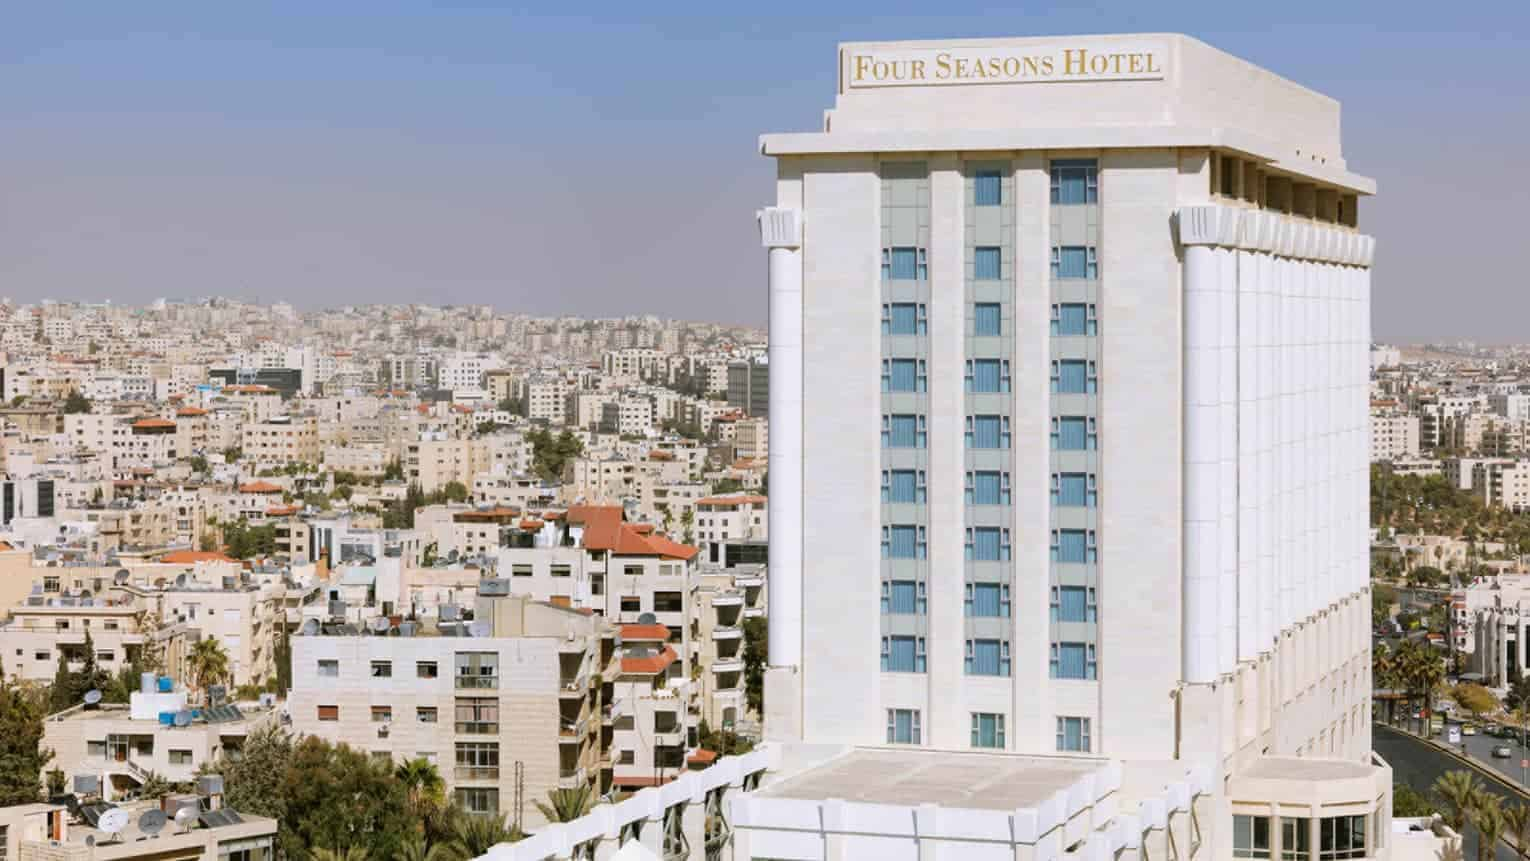 Four Seasons in Amman, Jordan